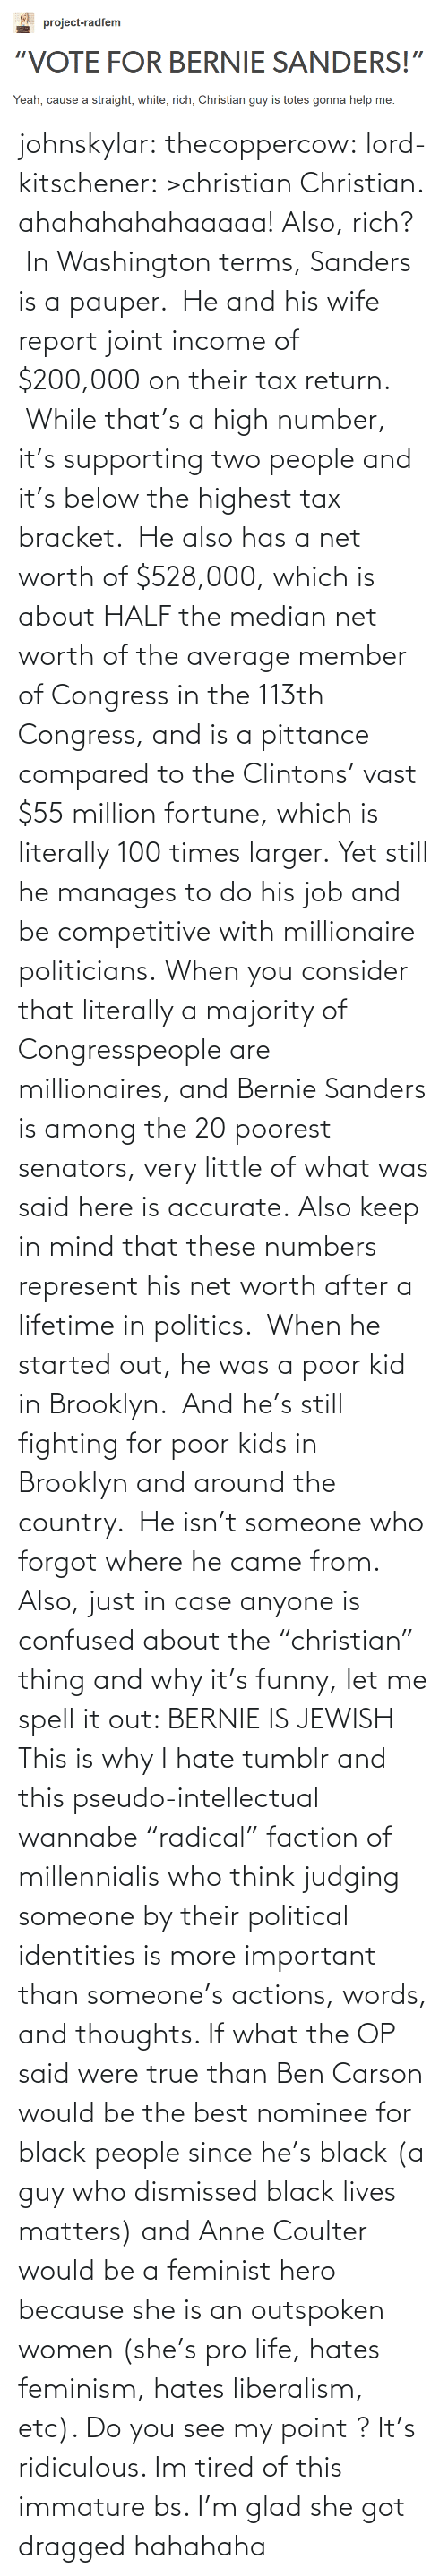 """tax bracket: project-radfem  """"VOTE FOR BERNIE SANDERS!""""  Yeah, cause a straight, white, rich, Christian guy is totes gonna help me. johnskylar:  thecoppercow:  lord-kitschener:  >christian  Christian.  ahahahahahaaaaa! Also, rich? In Washington terms, Sanders is a pauper. He and his wife report joint income of $200,000 on their tax return. While that's a high number, it's supporting two people and it's below the highest tax bracket. He also has a net worth of $528,000, which is about HALF the median net worth of the average member of Congress in the 113th Congress, and is a pittance compared to the Clintons' vast $55 million fortune, which is literally 100 times larger. Yet still he manages to do his job and be competitive with millionaire politicians. When you consider that literally a majority of Congresspeople are millionaires, and Bernie Sanders is among the 20 poorest senators, very little of what was said here is accurate. Also keep in mind that these numbers represent his net worth after a lifetime in politics. When he started out, he was a poor kid in Brooklyn. And he's still fighting for poor kids in Brooklyn and around the country. He isn't someone who forgot where he came from. Also, just in case anyone is confused about the""""christian"""" thing and why it's funny, let me spell it out: BERNIE IS JEWISH   This is why I hate tumblr and this pseudo-intellectual wannabe """"radical"""" faction of millennialis who think judging someone by their political identities is more important than someone's actions, words, and thoughts. If what the OP said were true than Ben Carson would be the best nominee for black people since he's black (a guy who dismissed black lives matters) and Anne Coulter would be a feminist hero because she is an outspoken women (she's pro life, hates feminism, hates liberalism, etc). Do you see my point ? It's ridiculous. Im tired of this immature bs. I'm glad she got dragged hahahaha"""